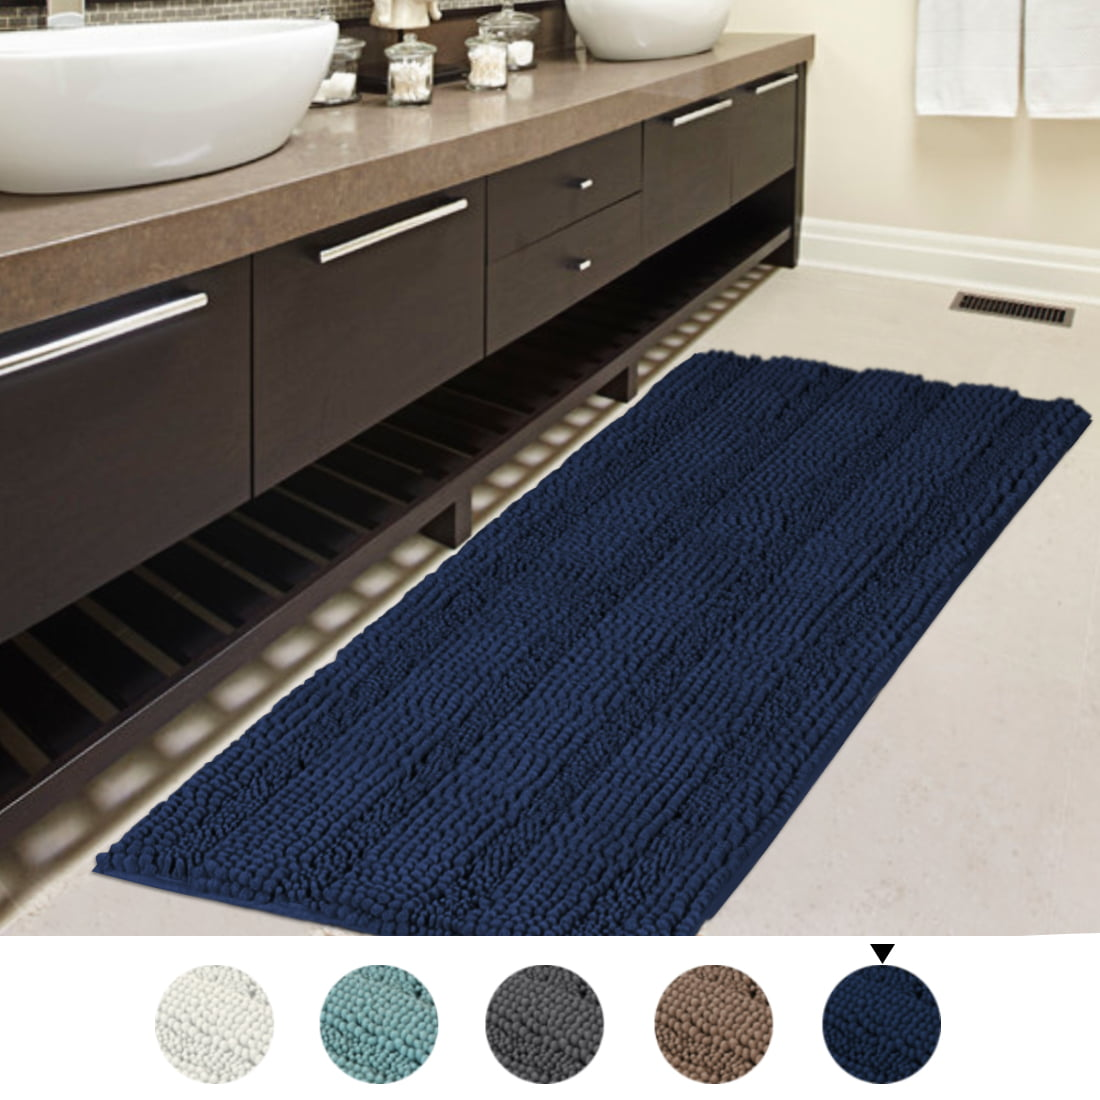 Bathroom Rug Shower Mat